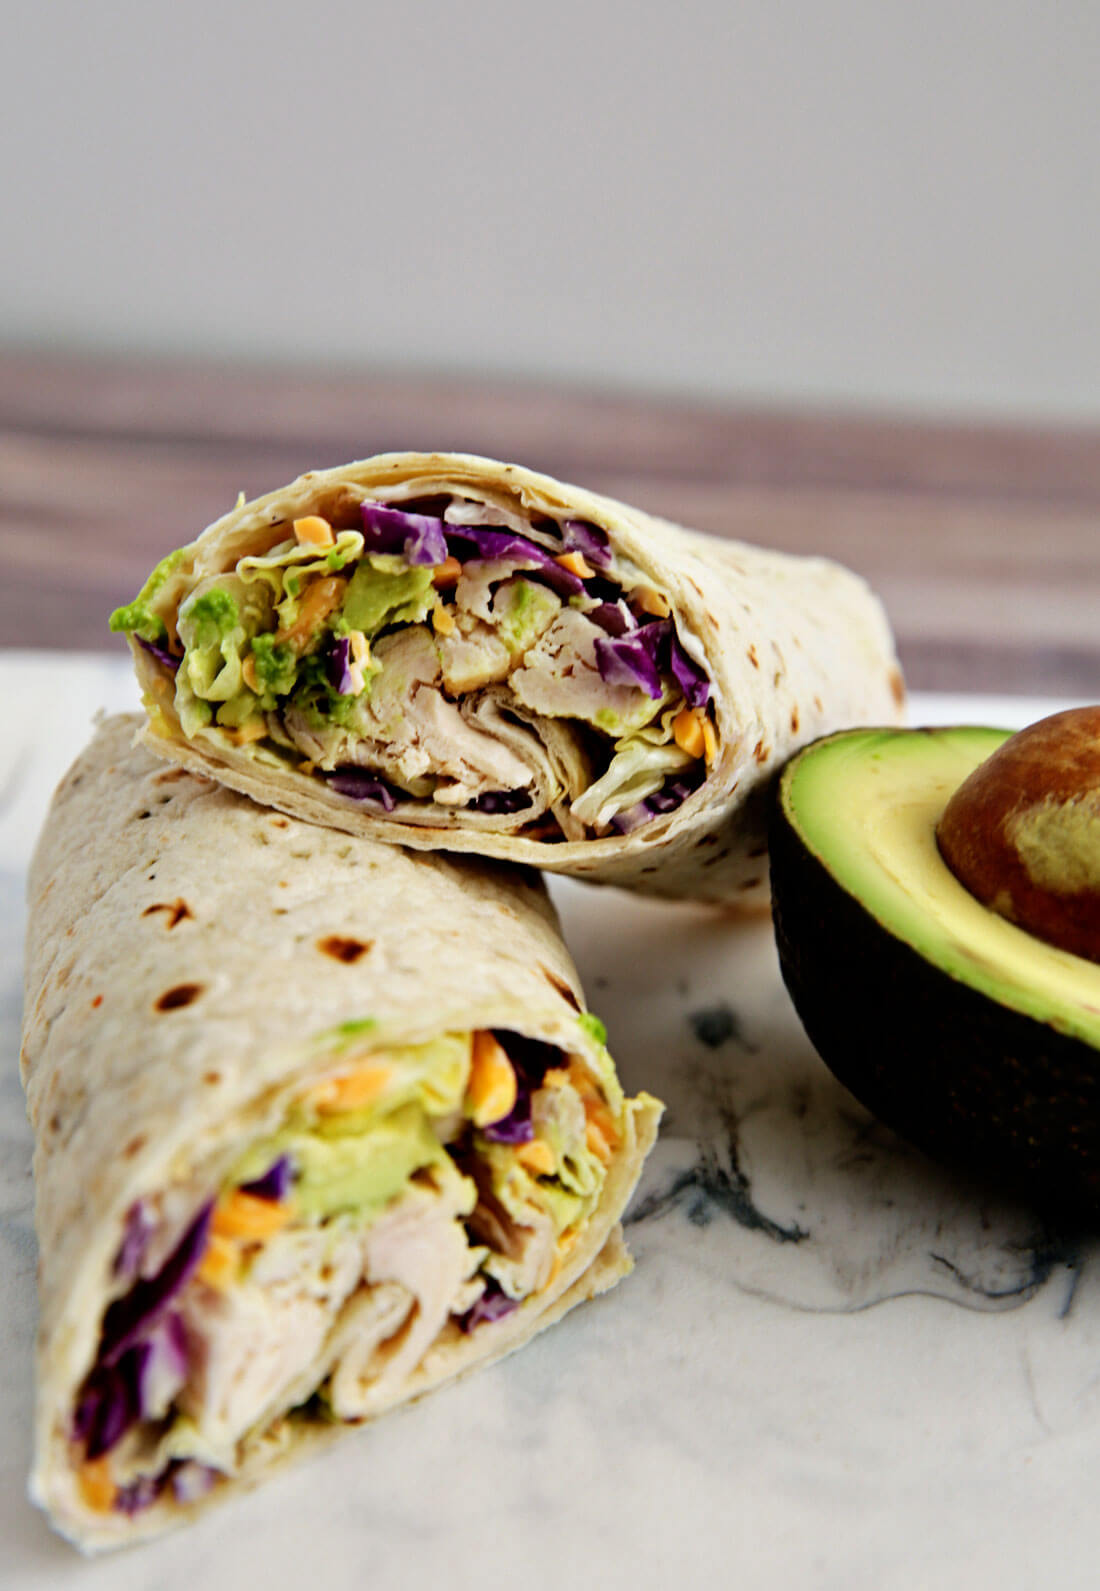 Ranch Chicken Wrap - an easy to make, healthy lunch or dinner idea. www.thirtyhandmadedays.com